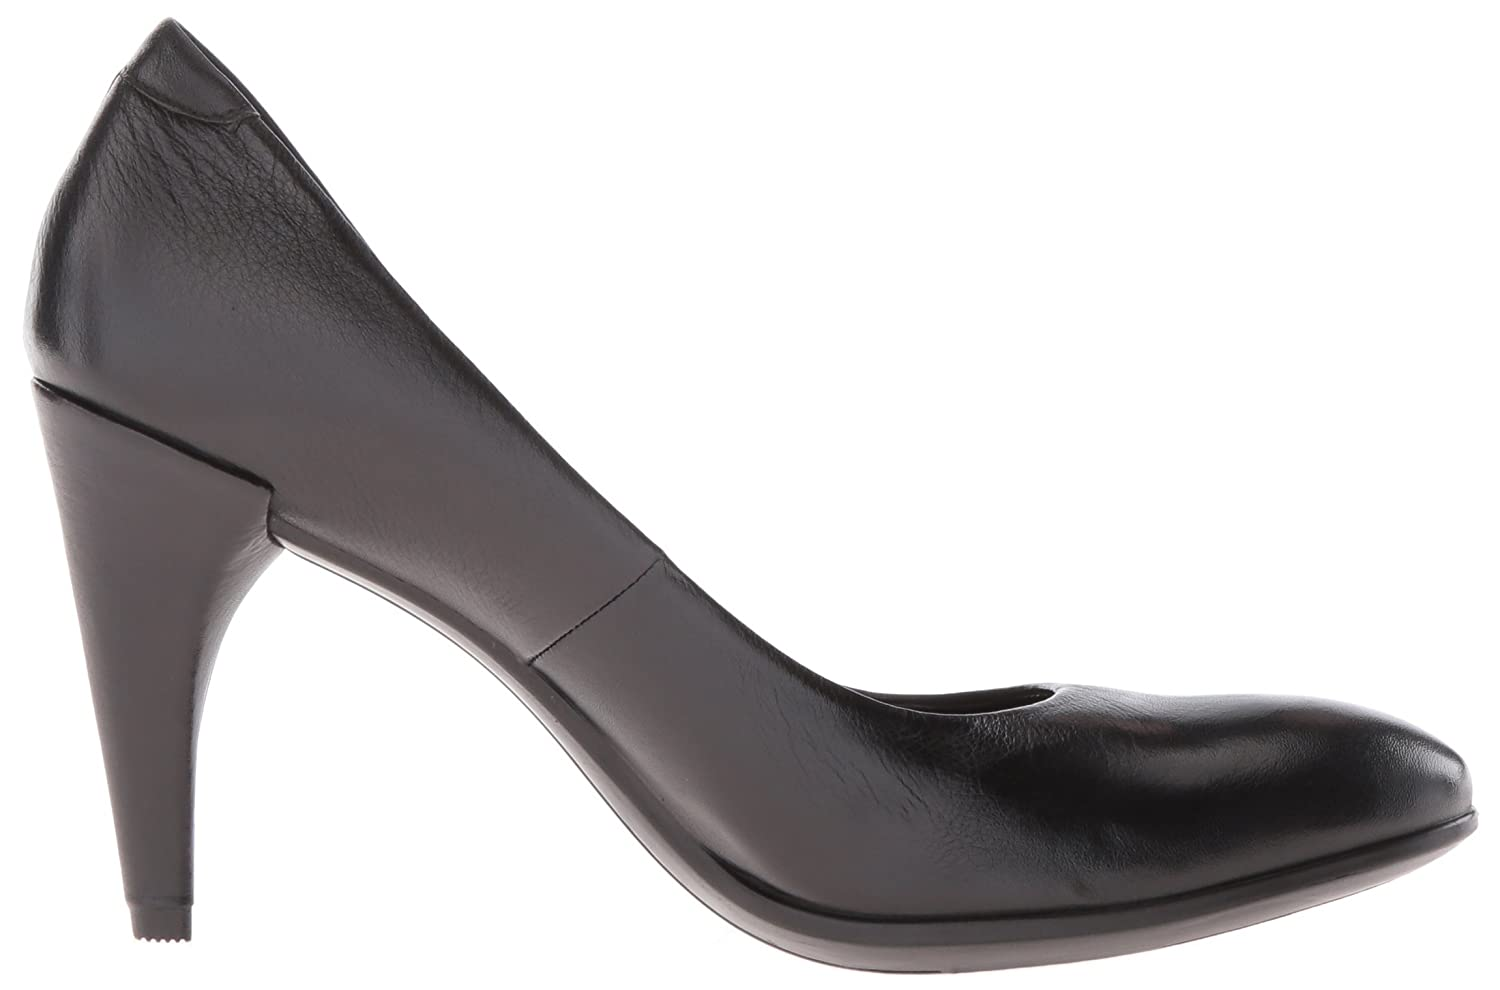 ECCO Women's Shape 75 Sleek Dress Pump B01A9IR15Y 41 EU/10-10.5 M US|Black